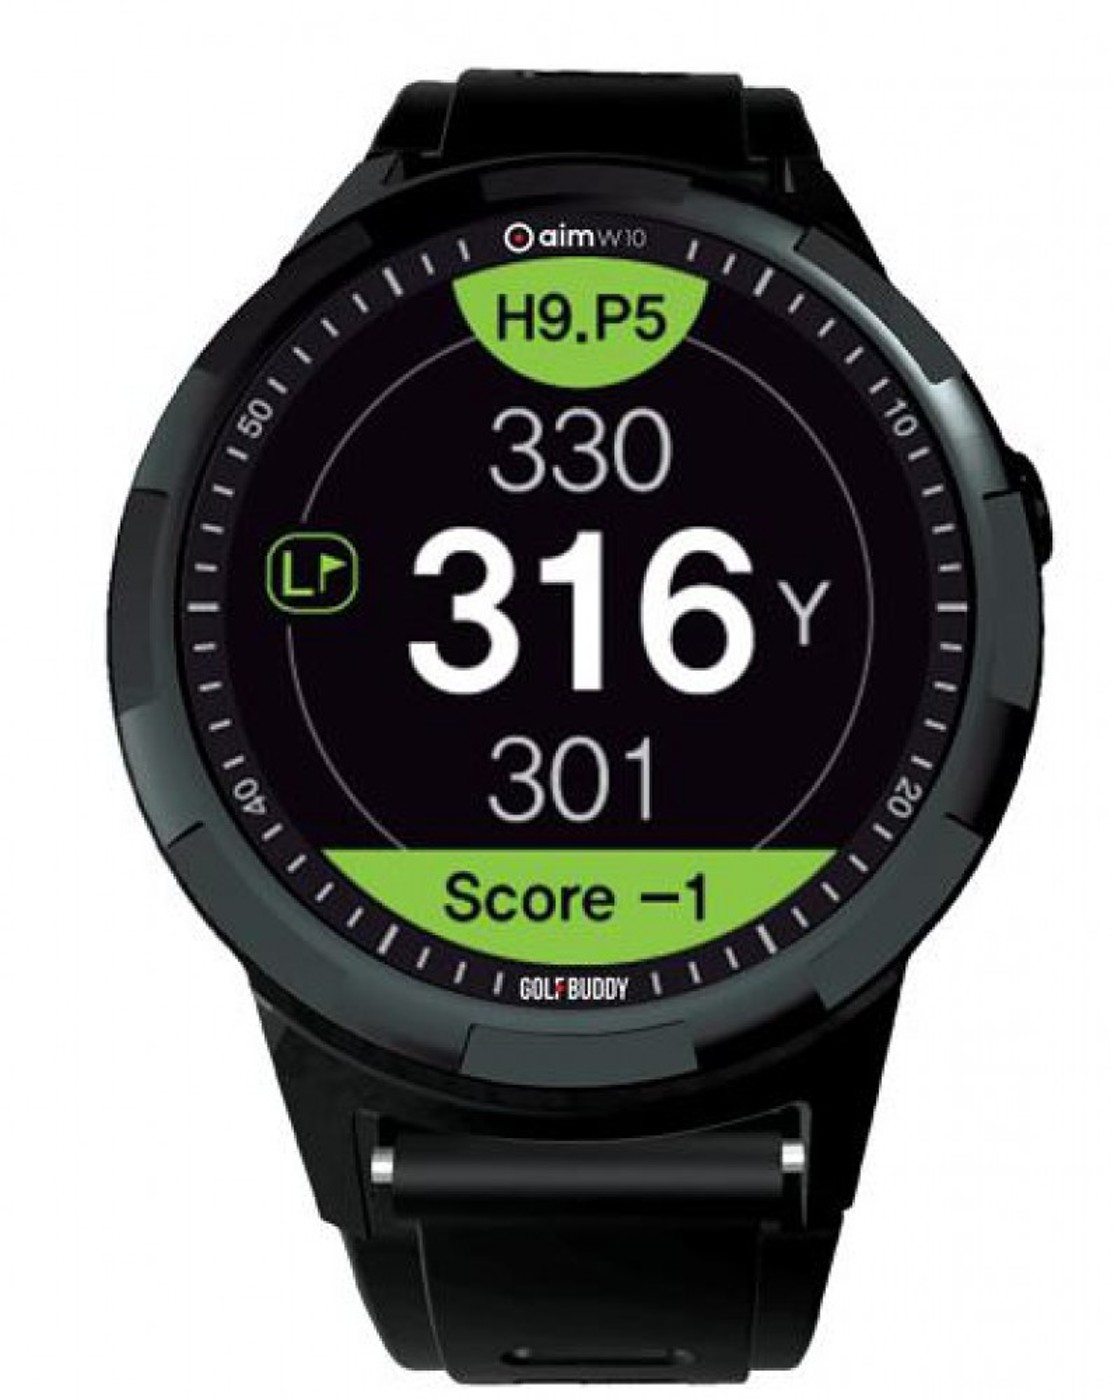 GOLF BUDDY AIM W10 WATCH